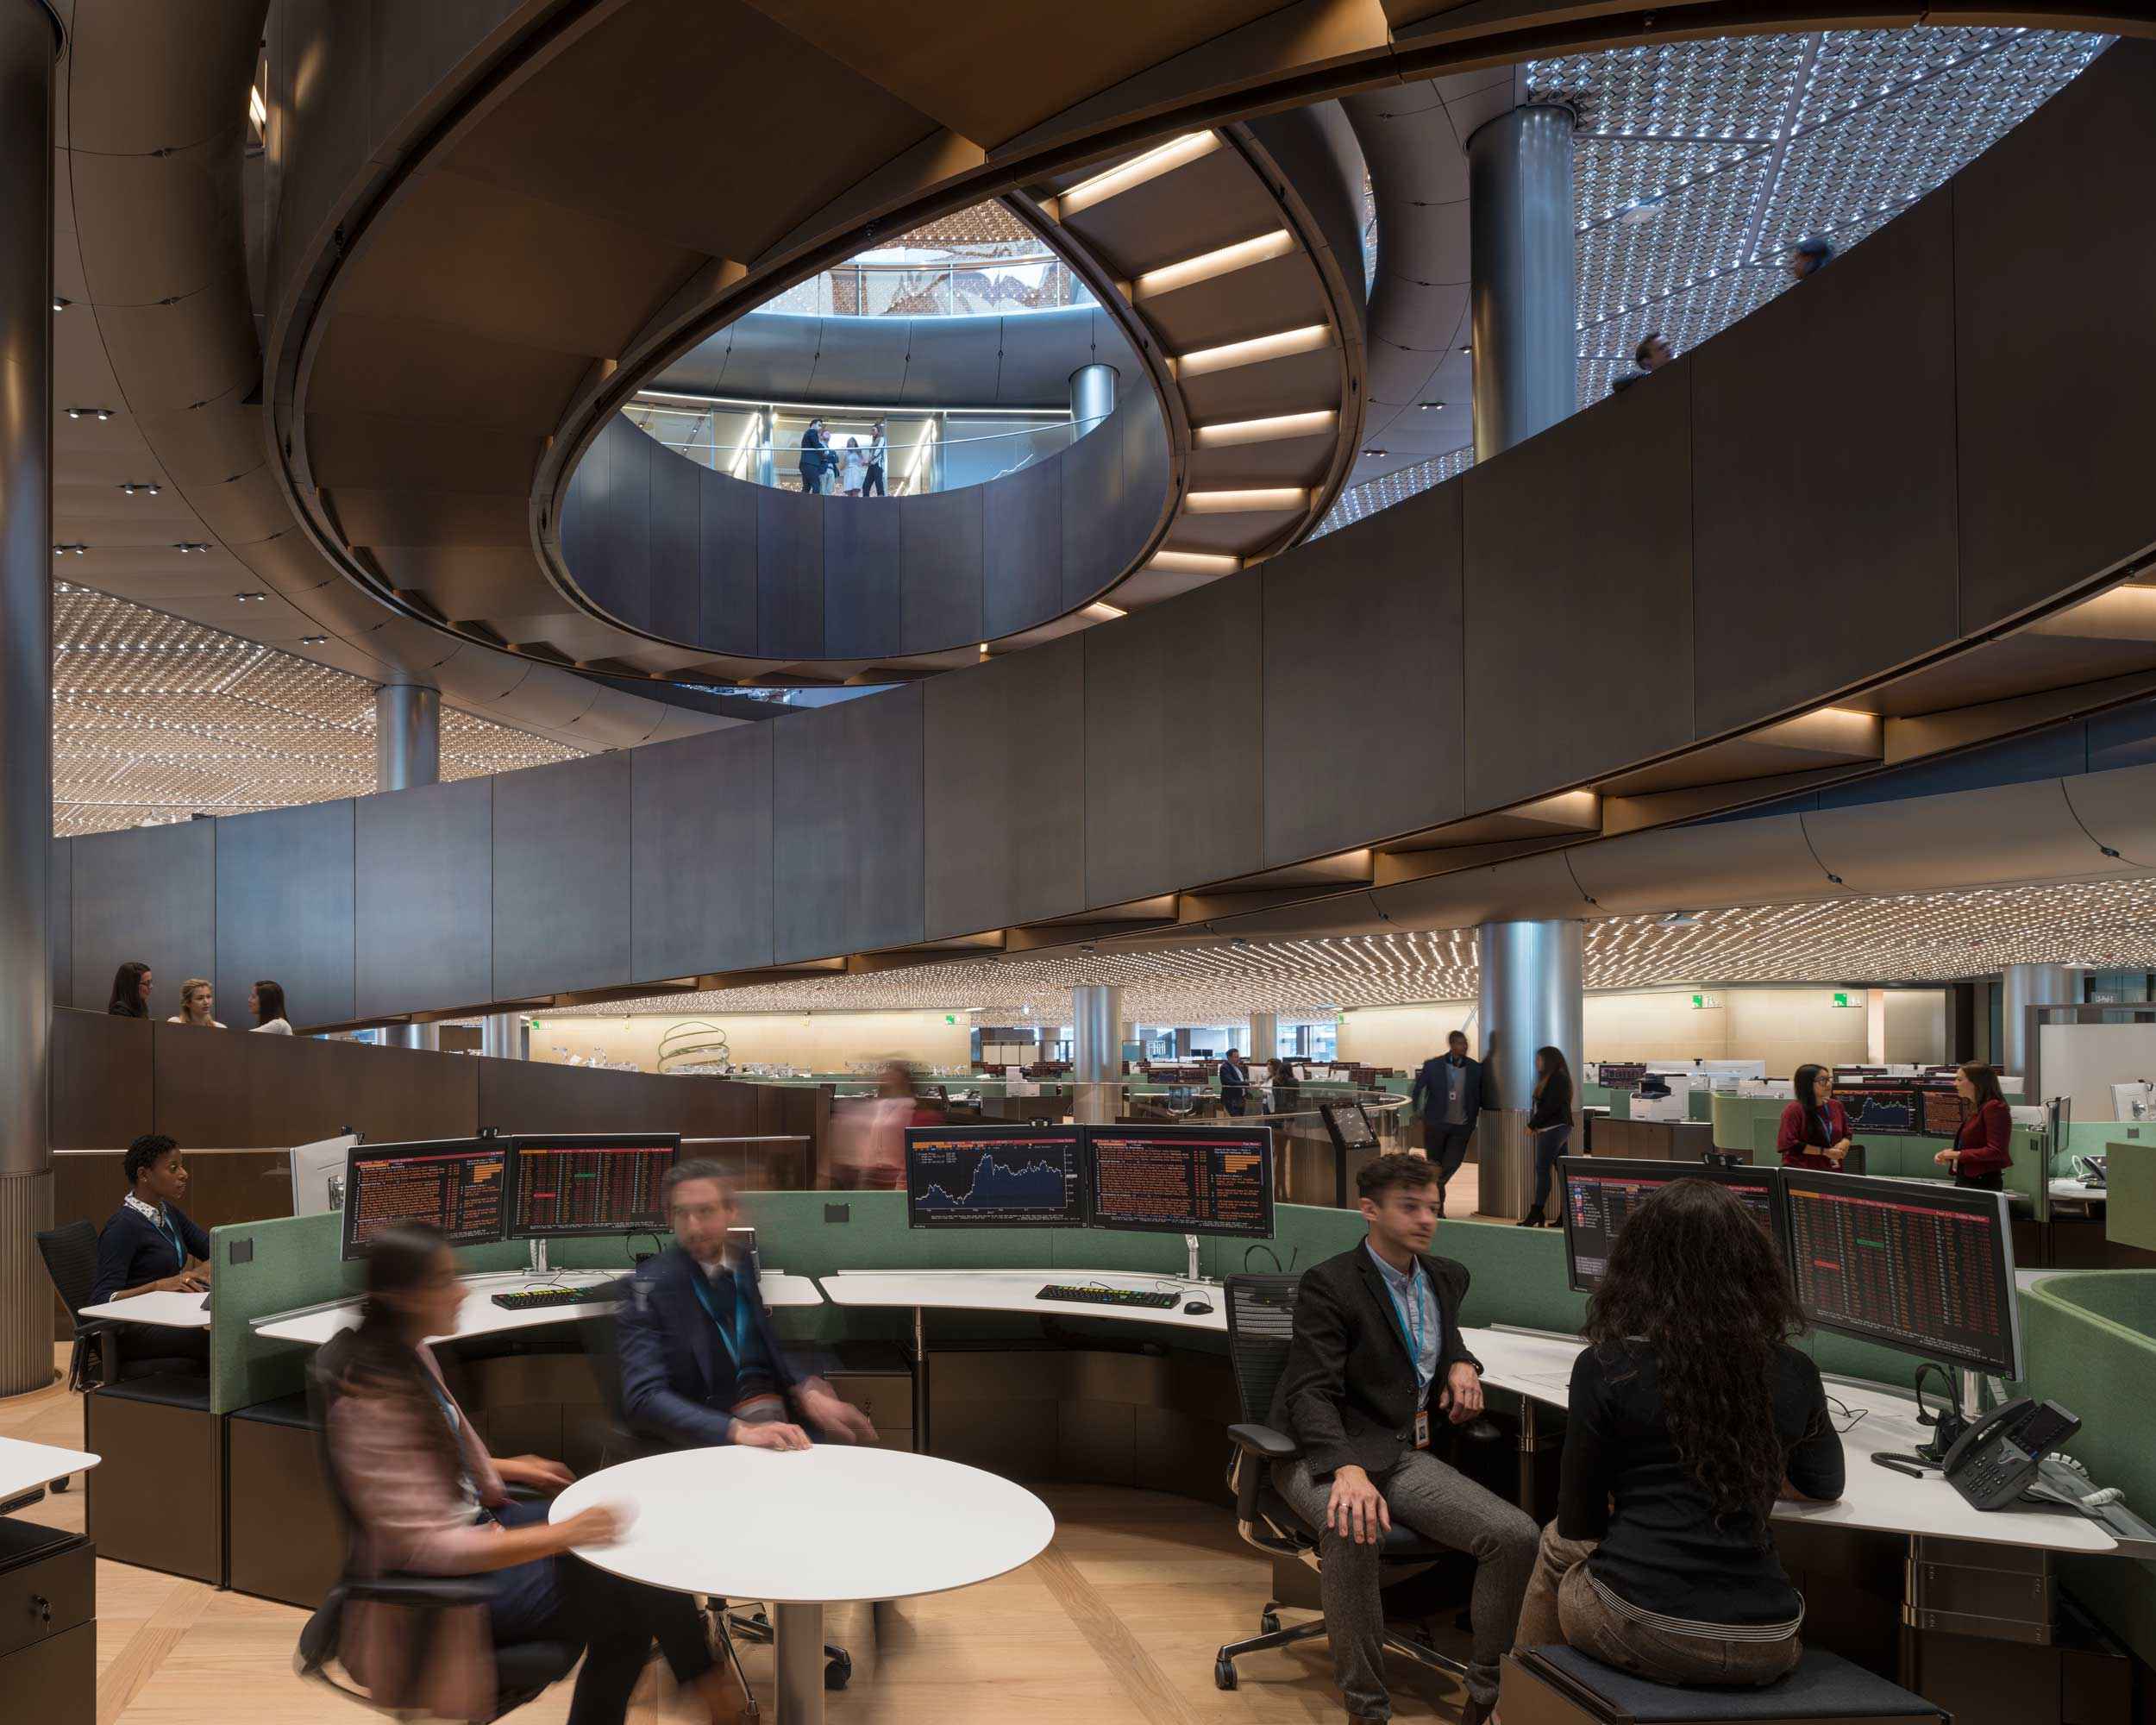 Bloomberg European HQ Workplace - Communal Areas